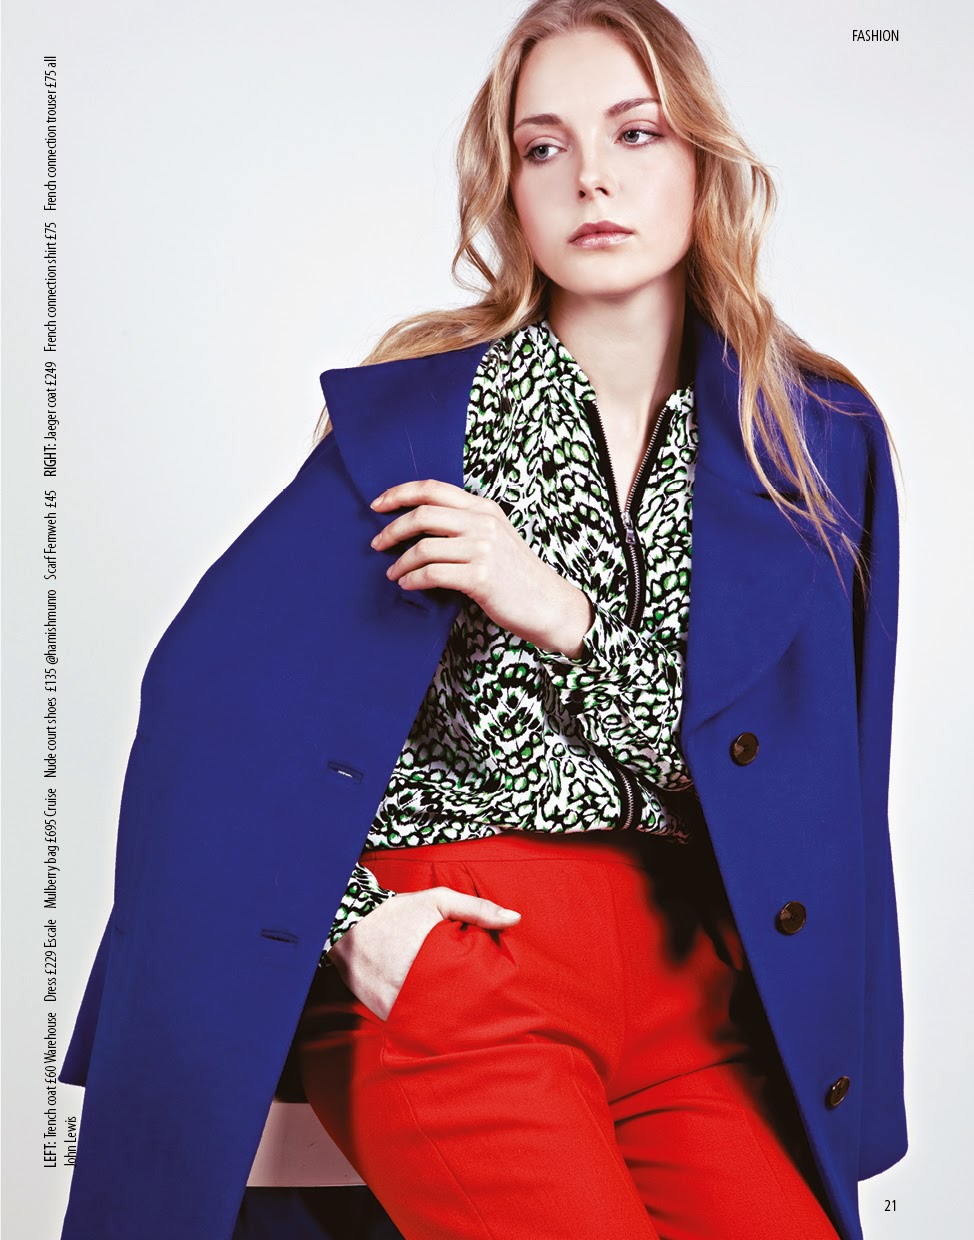 model wears bright blue coat for fashion shoot, with loose textured hairstyling